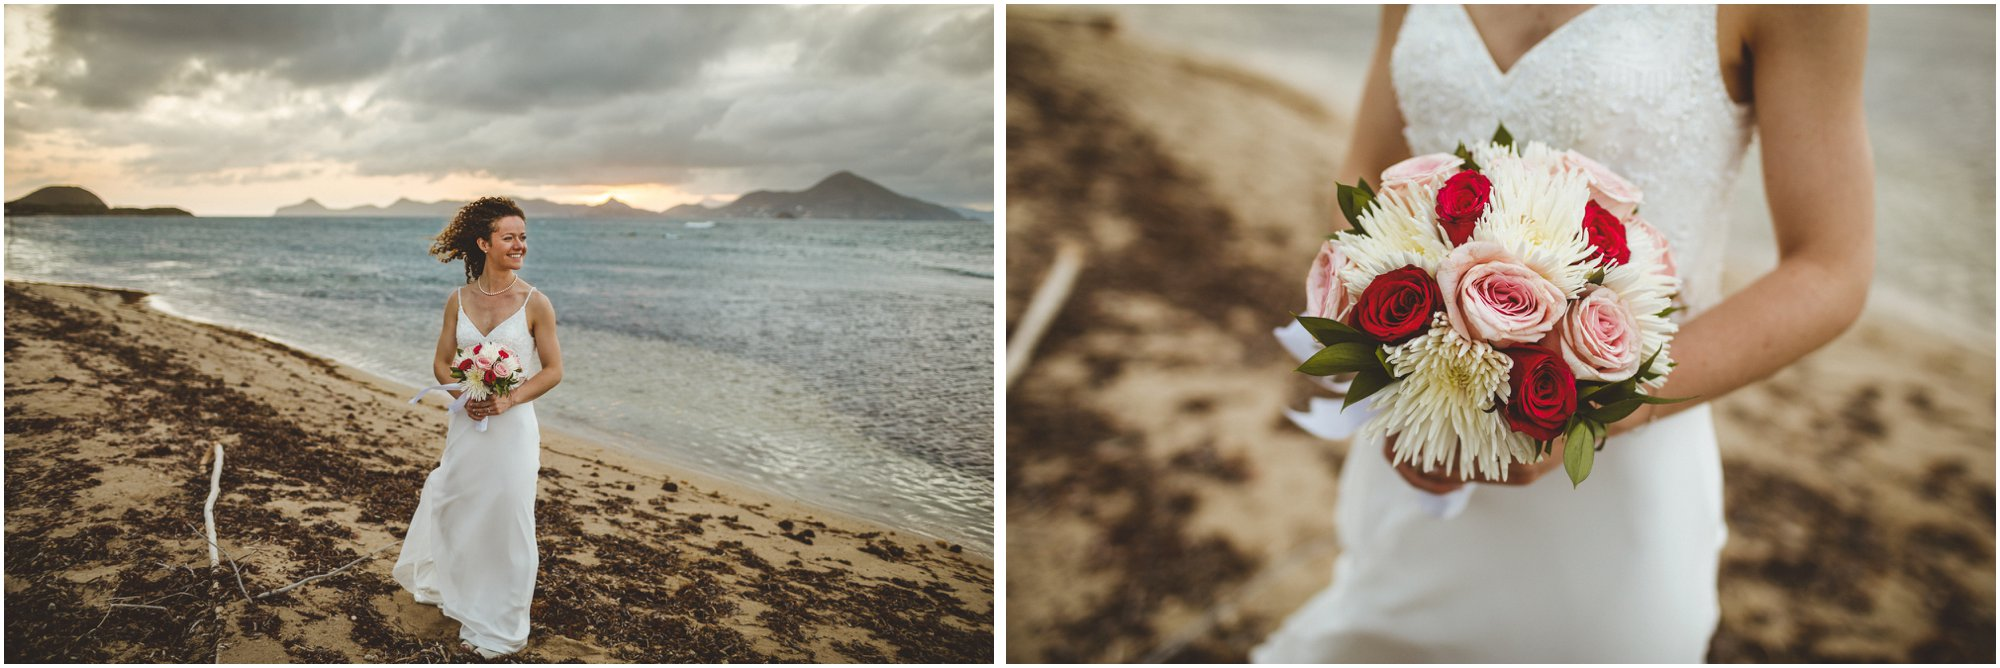 St Kitts and Nevis Wedding Photography_0125.jpg